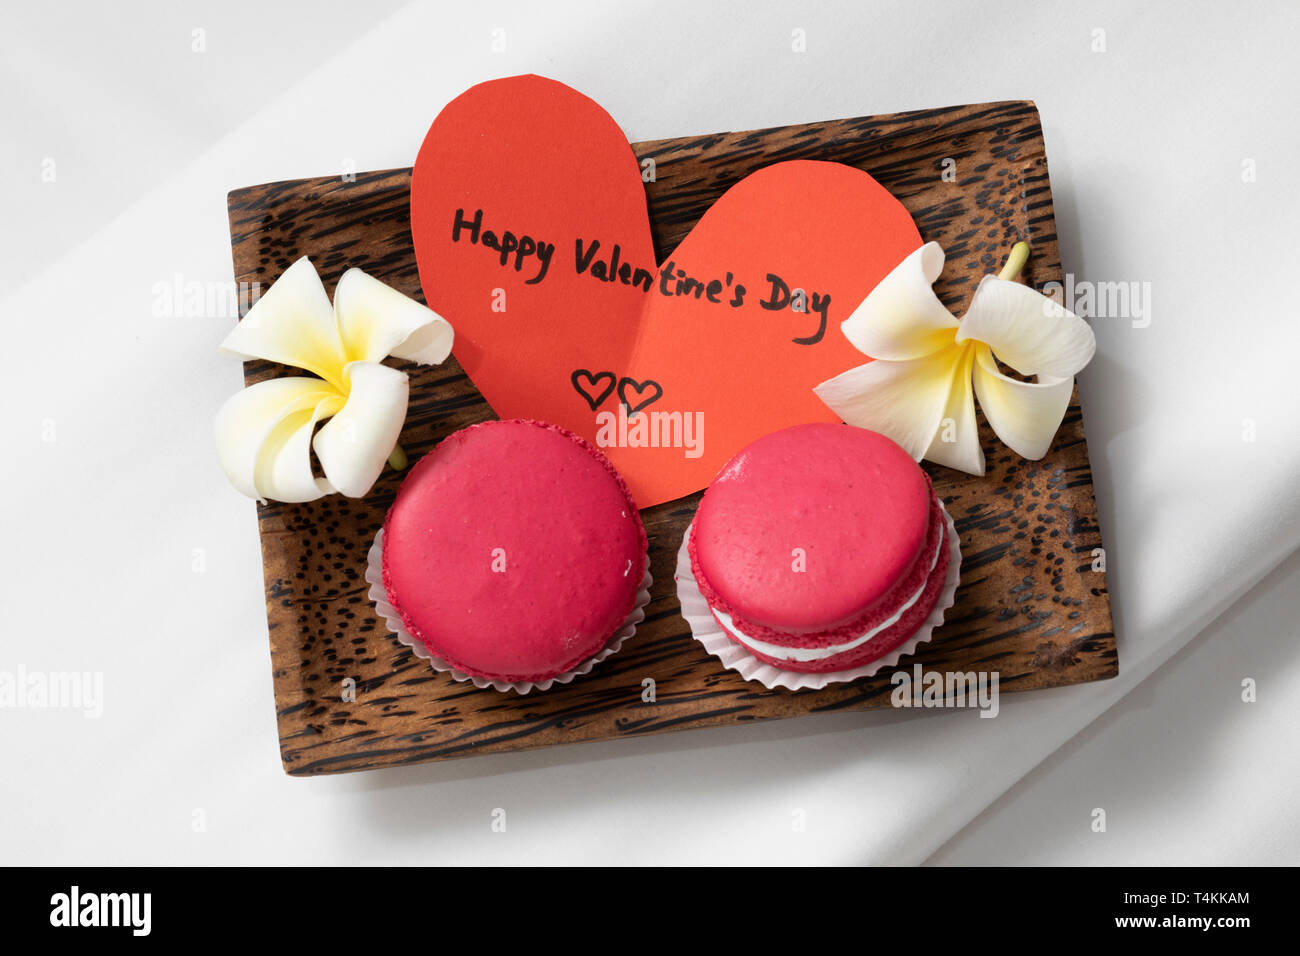 Macarons rouges pour la Saint-Valentin Photo Stock